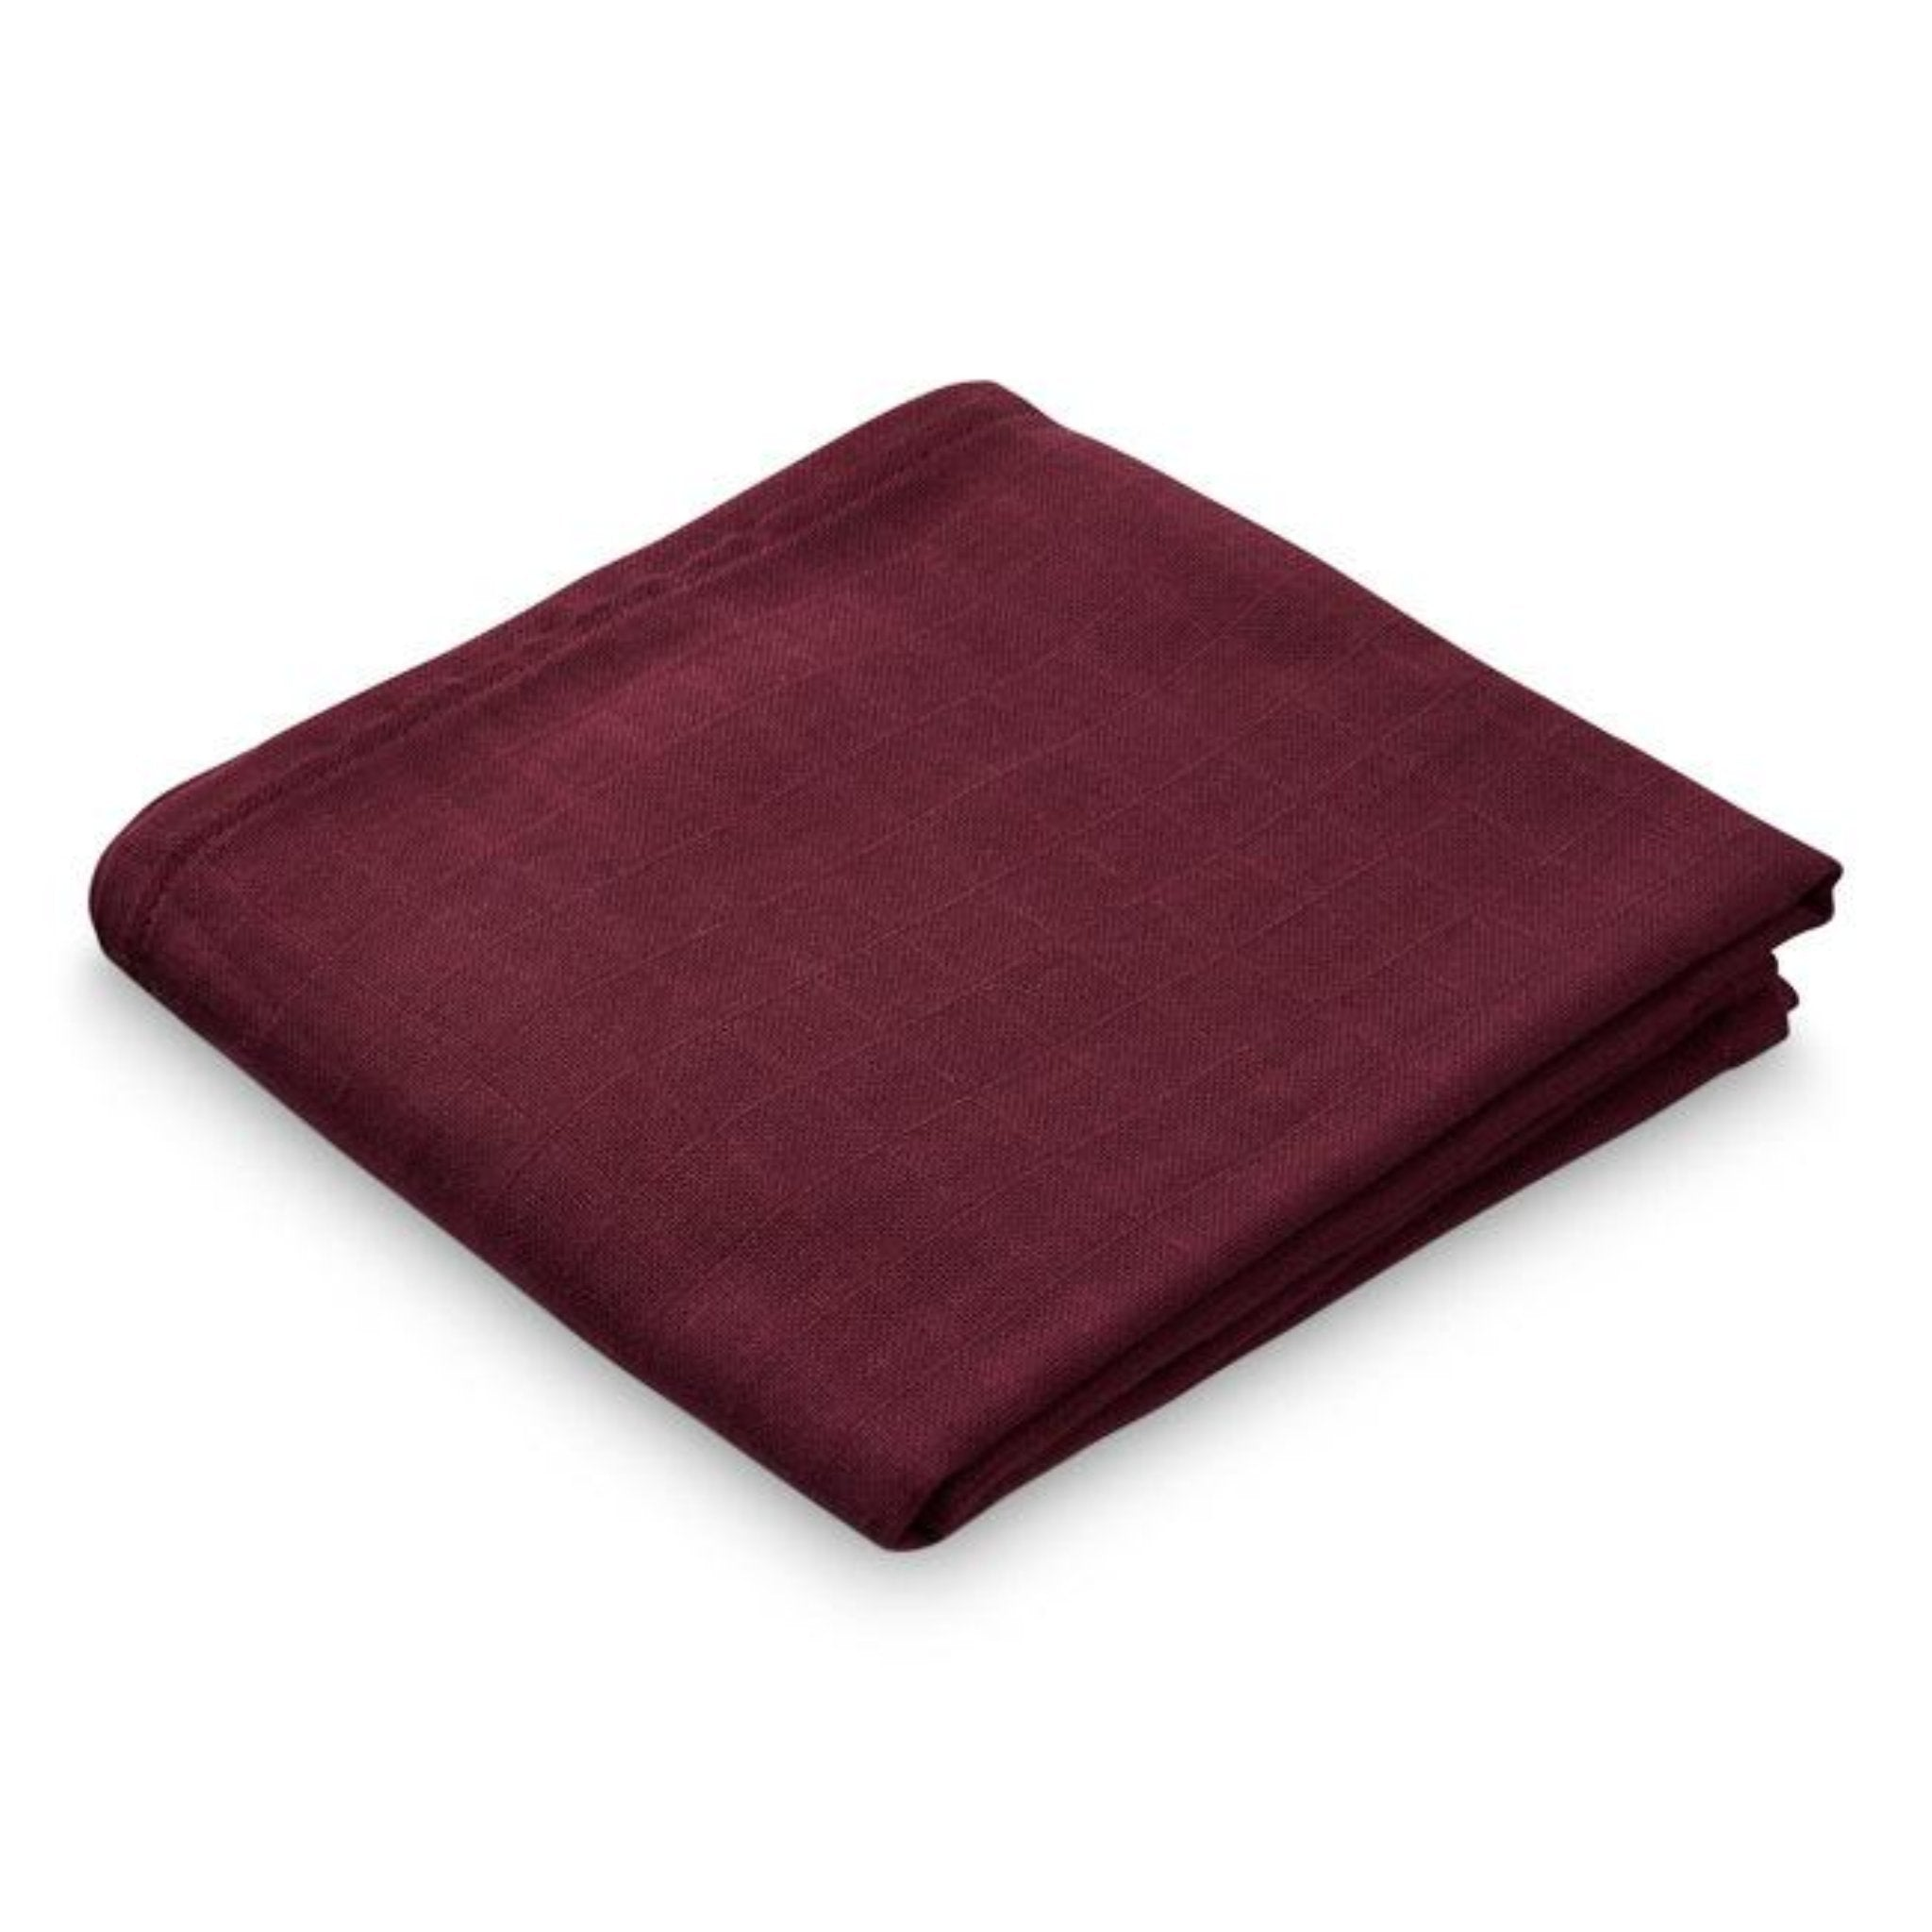 CAM CAM COPENHAGAN | Organic Muslin Cloth | Bordeaux